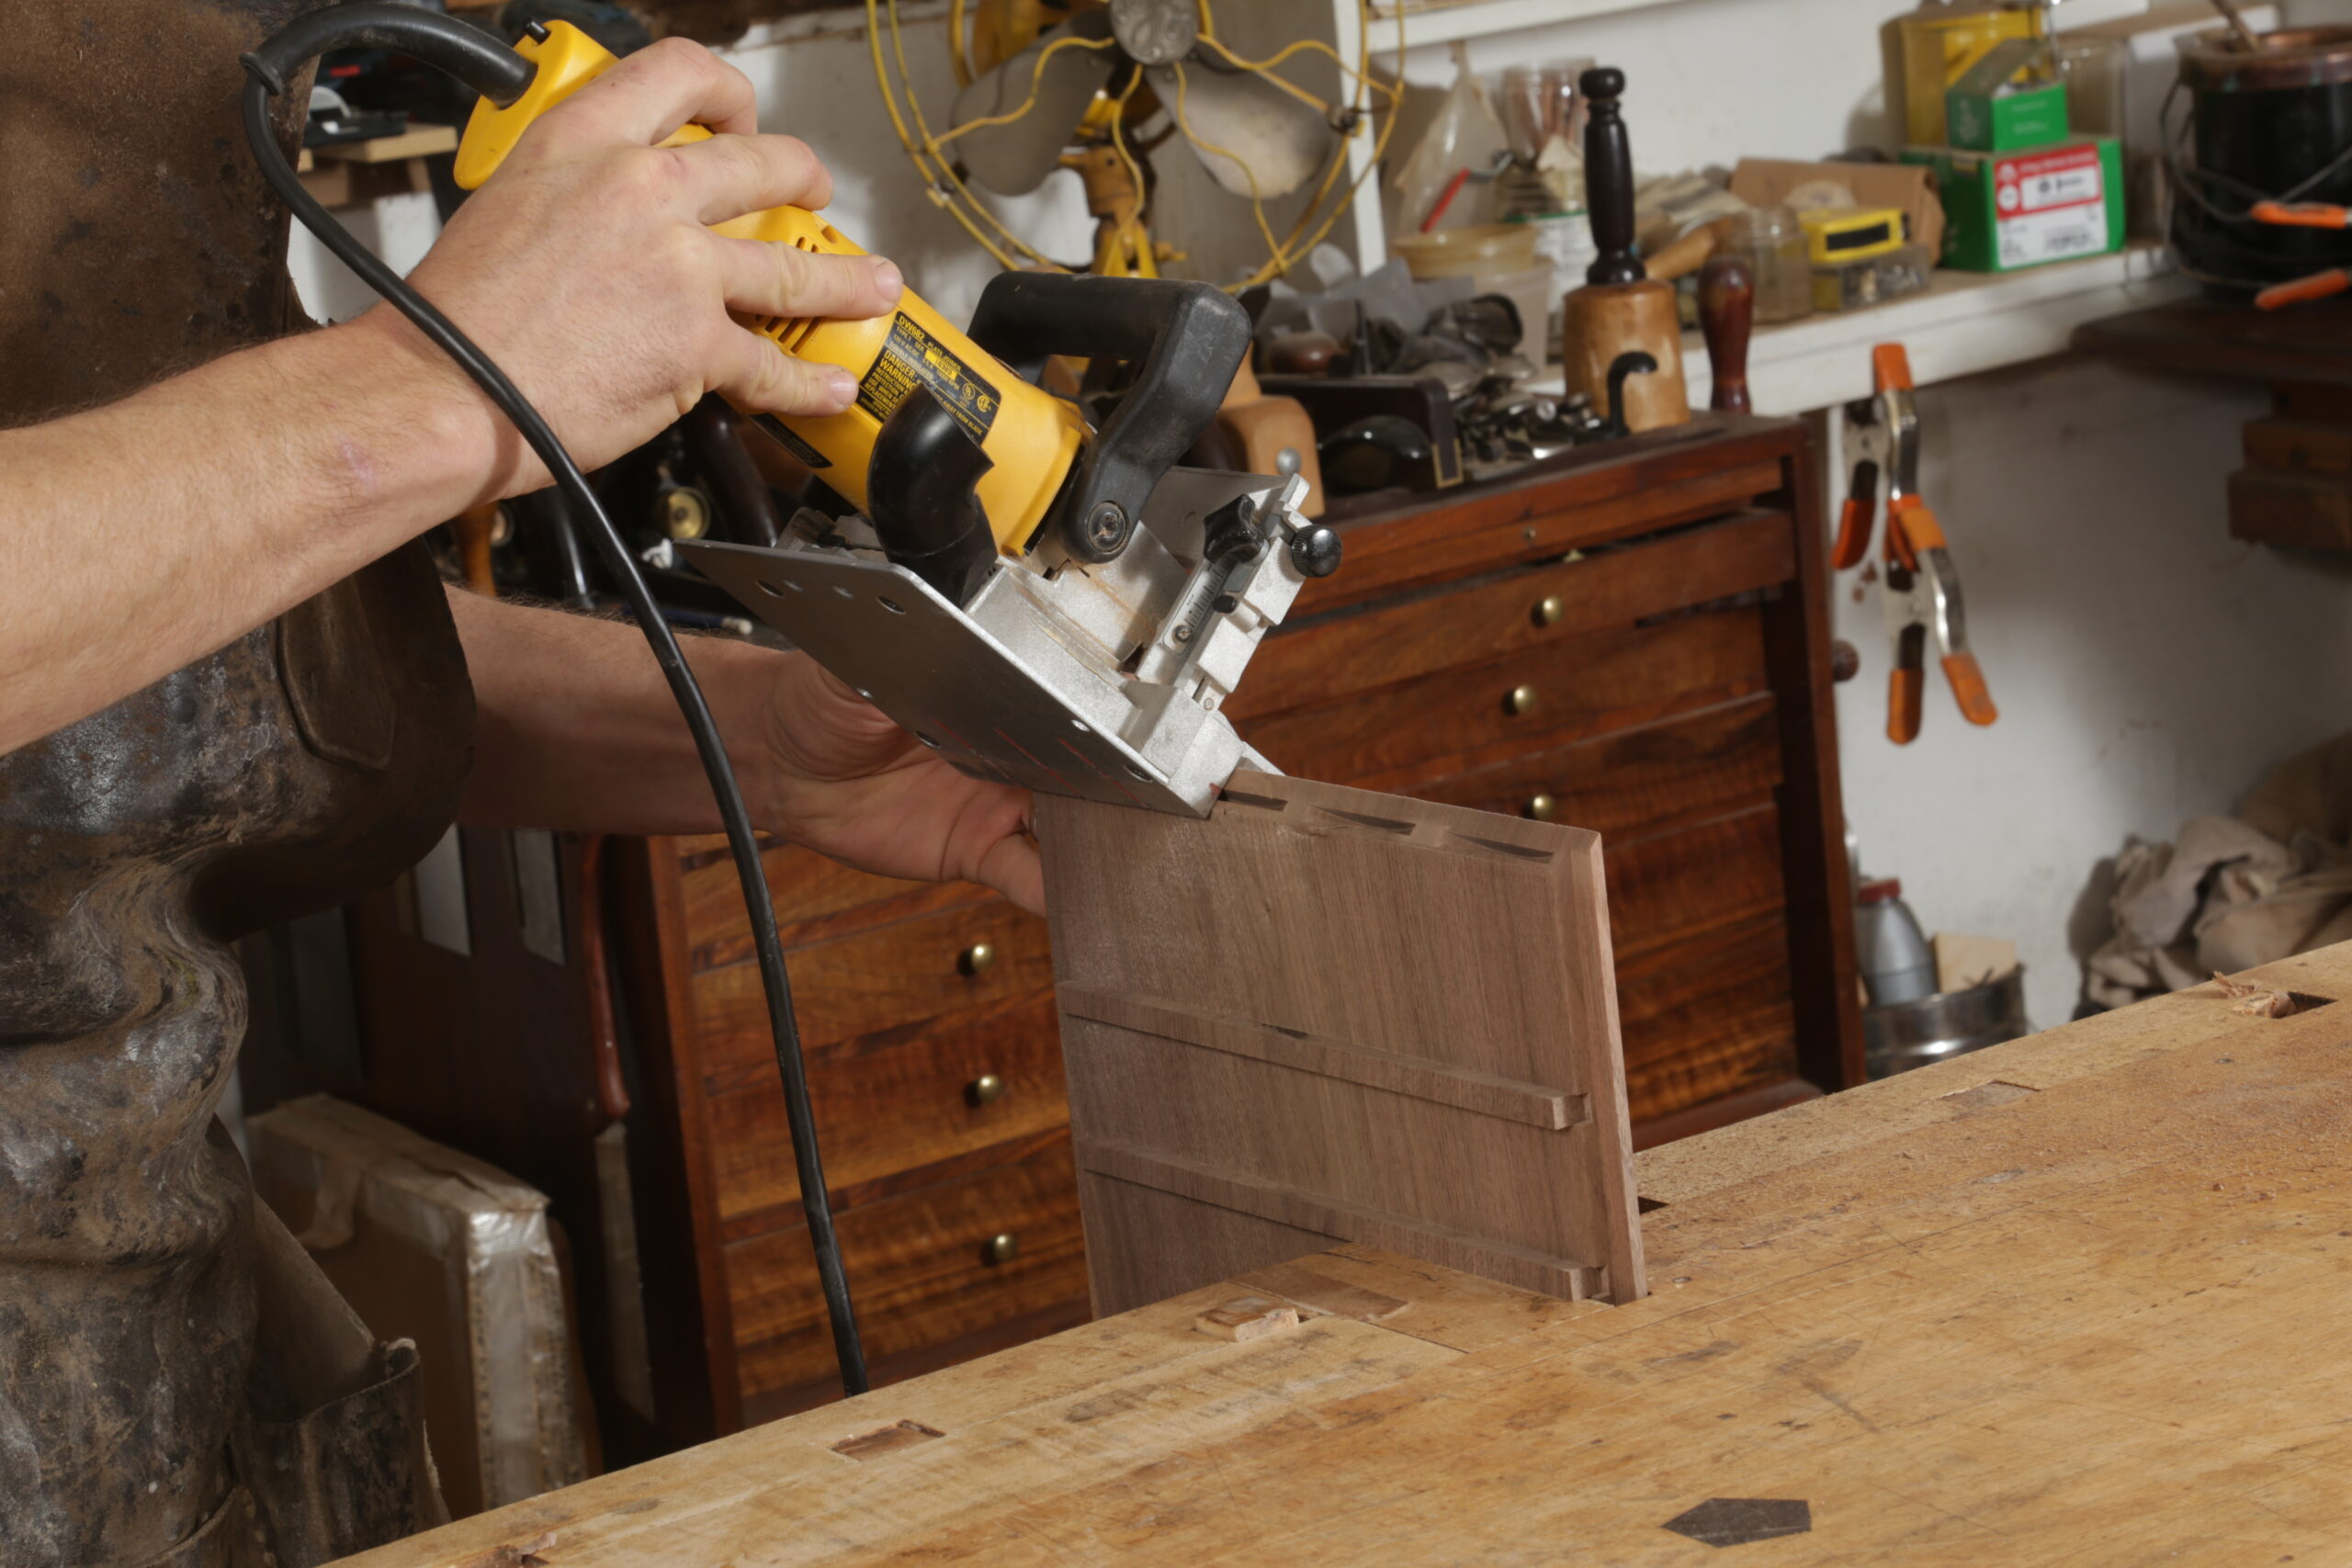 With the box held upright at the workbench, the author is using a biscuit joiner to cut slots in a mitered end. The slots are thin, and there are four of them along the miter. The biscuit joiner is predominantly yellow.